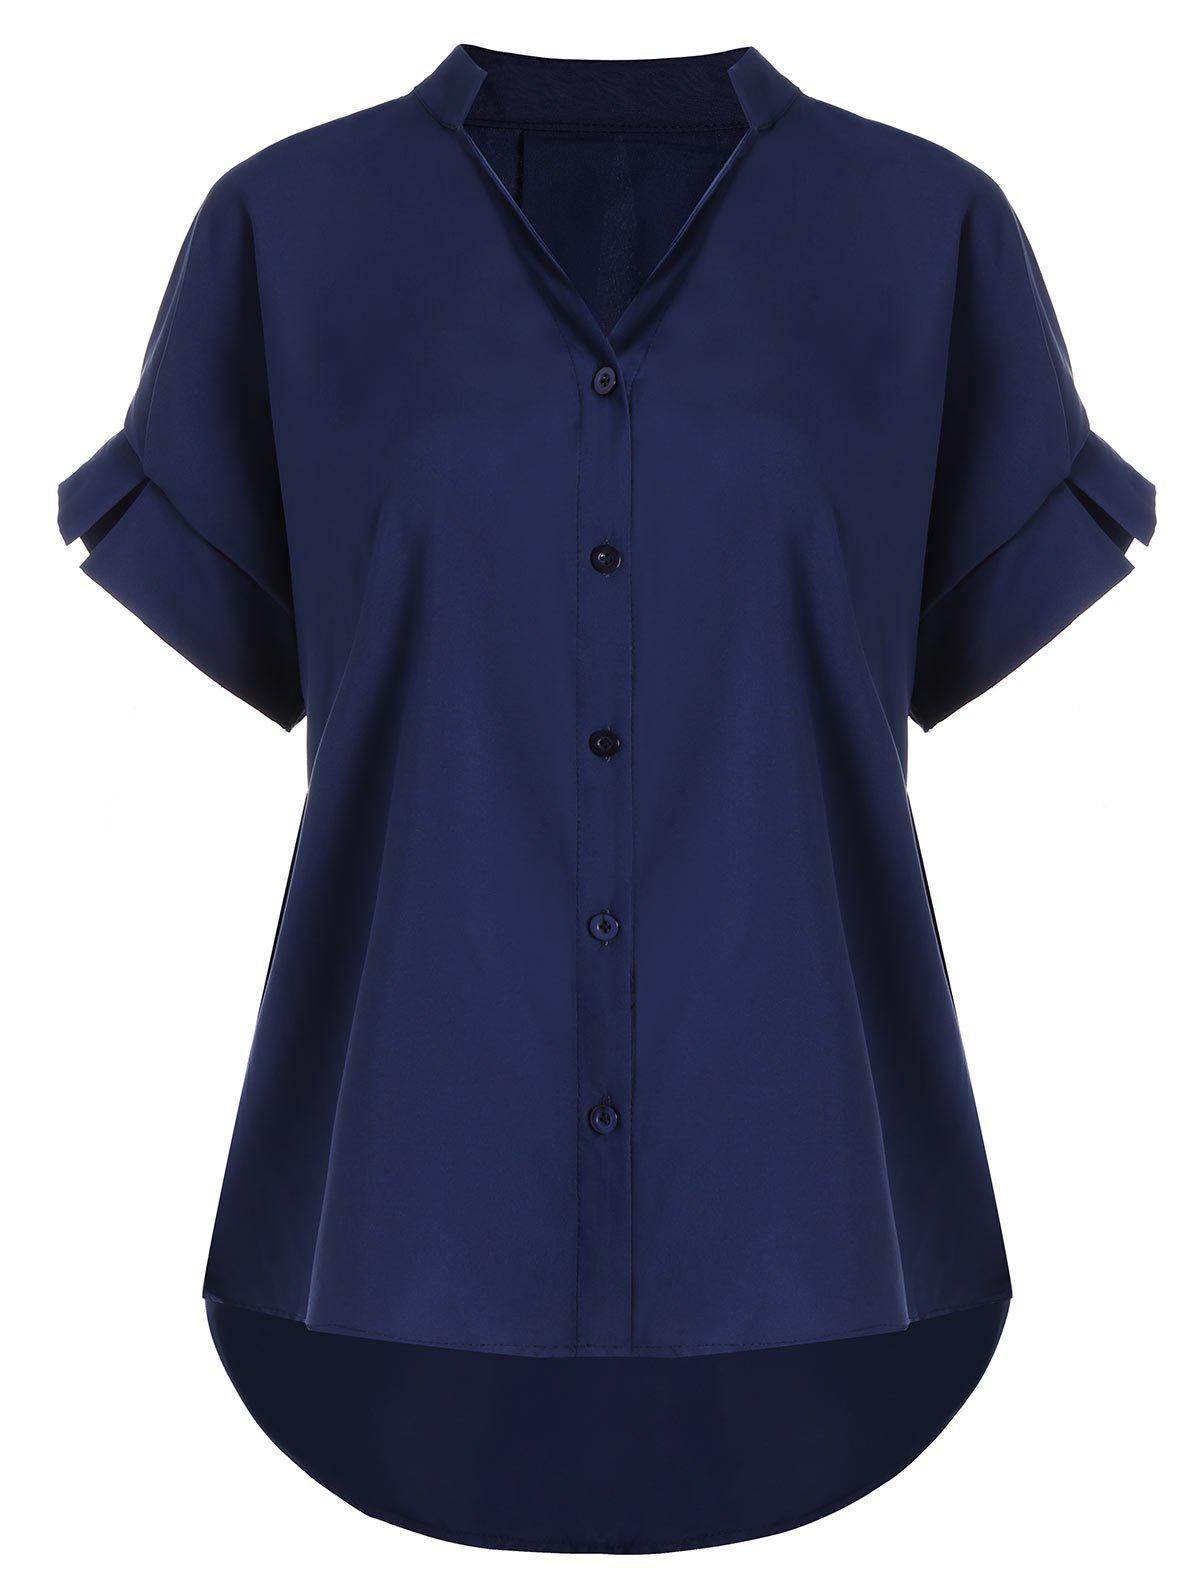 V Neck Button Up Plus Size BlouseWOMEN<br><br>Size: 2XL; Color: PURPLISH BLUE; Material: Polyester; Shirt Length: Long; Sleeve Length: Short; Collar: V-Neck; Style: Casual; Season: Summer; Pattern Type: Solid; Weight: 0.2200kg; Package Contents: 1 x Blouse;